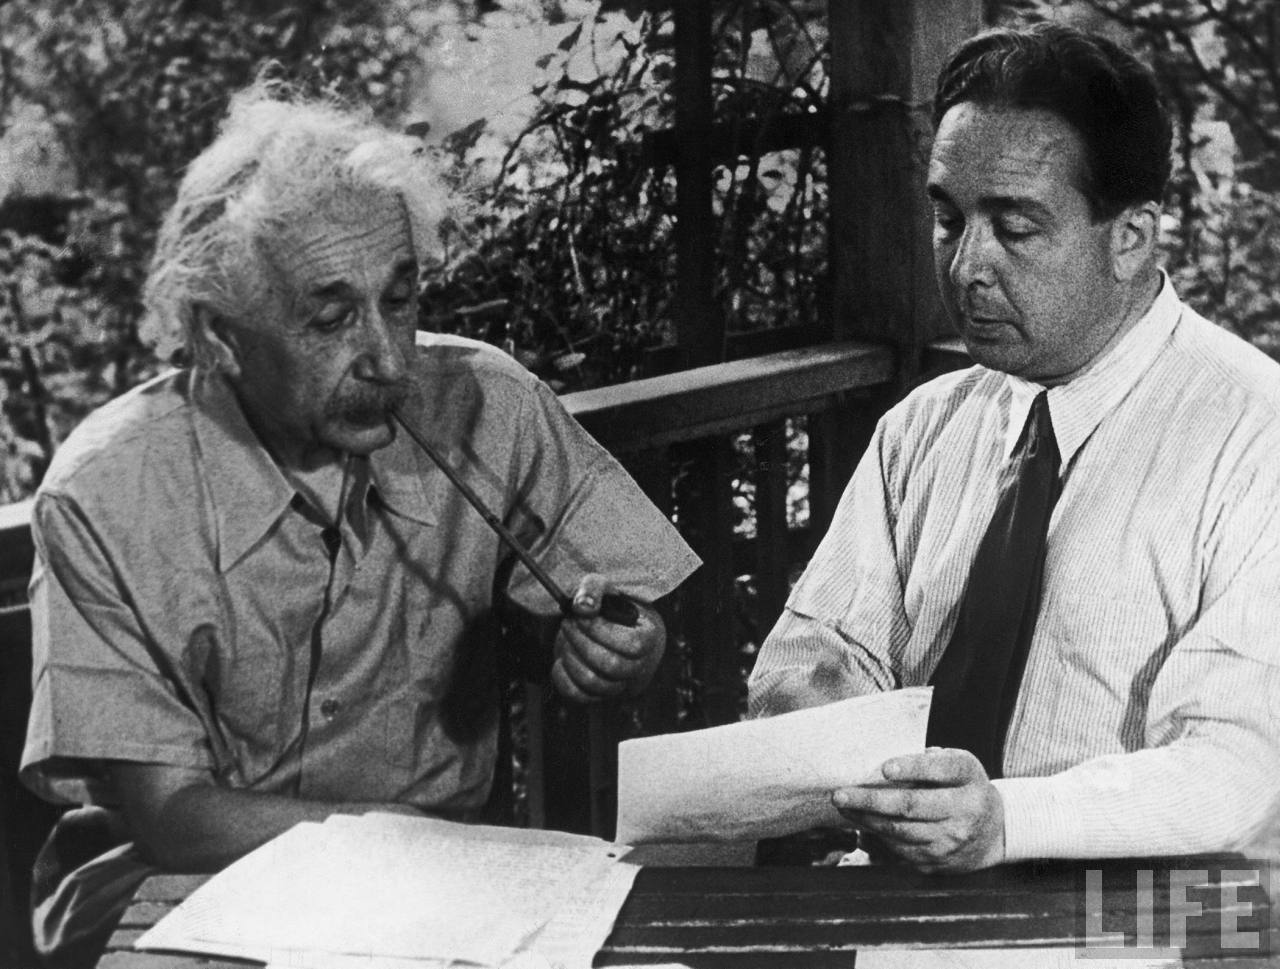 Leo Szilard working with Albert Einstein on his letter to President Roosevelt, which resulted in the Manhattan Project.